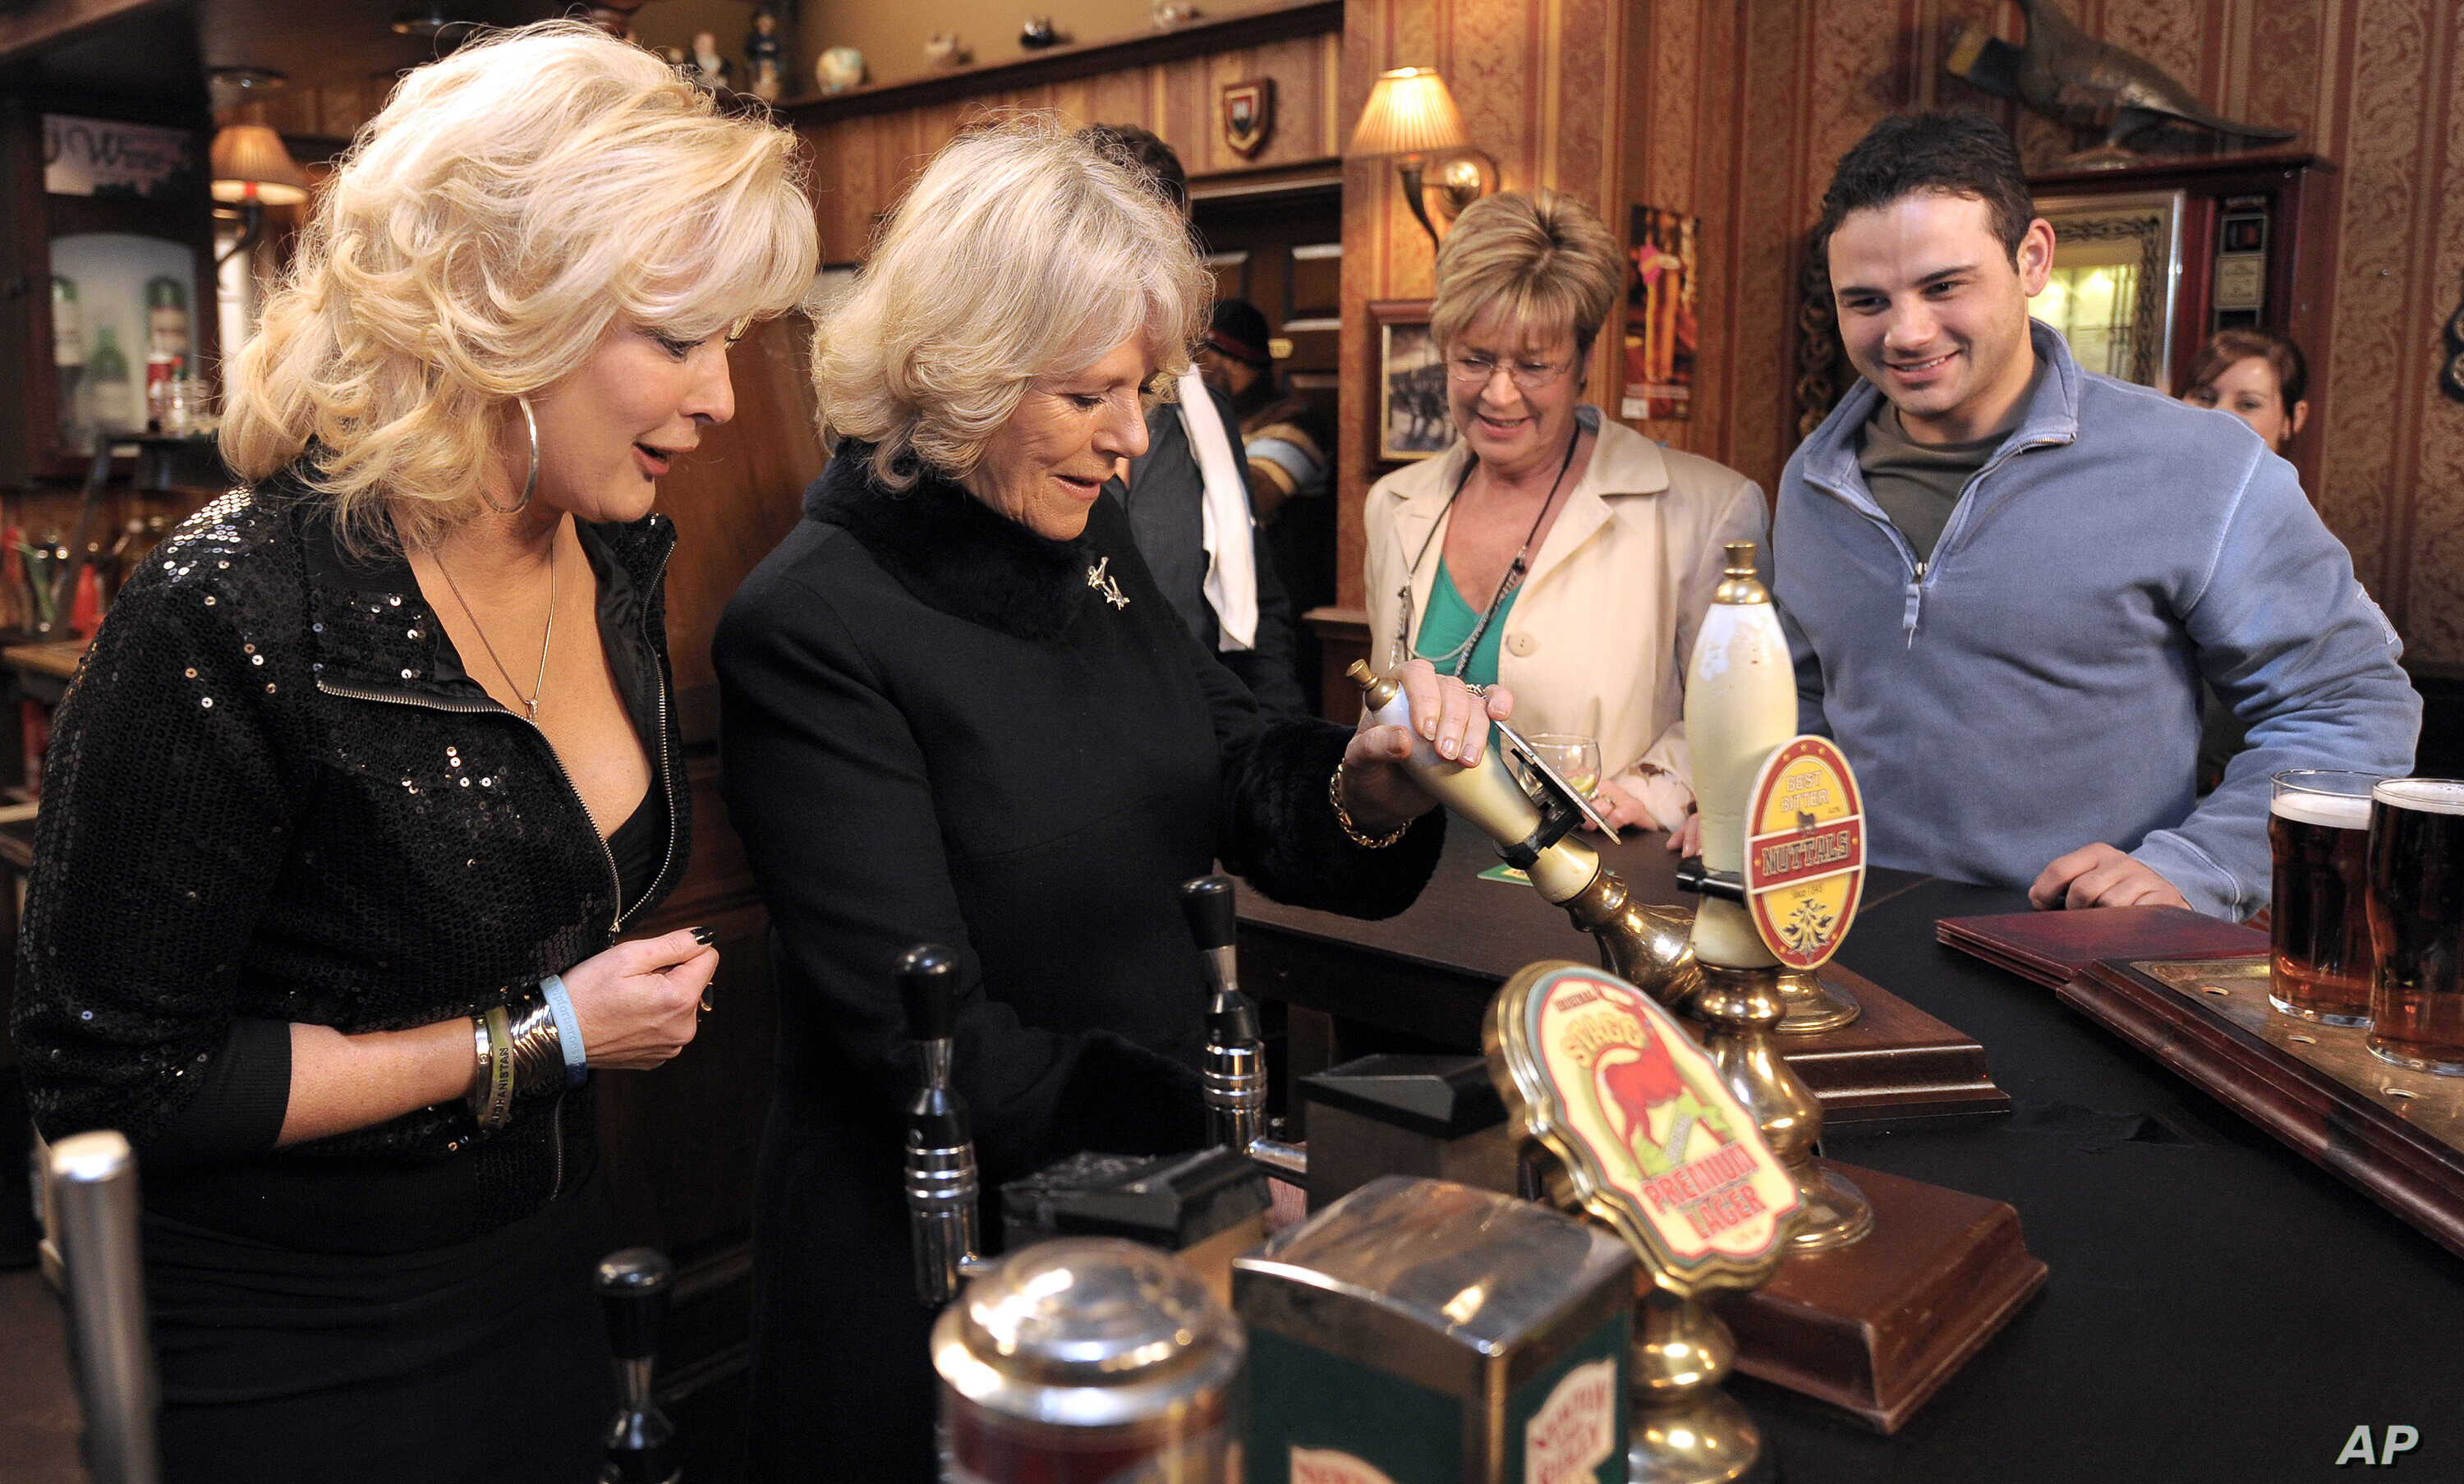 FILE - In this Thursday, Feb. 4, 2010 file photo, the Duchess of Cornwall, second left, pulls a pint of beer in the Rovers Return pub, as she meets actors Beverley Callard, left, who plays landlady Liz McDonald, Anne Kirkbride, second right, who play